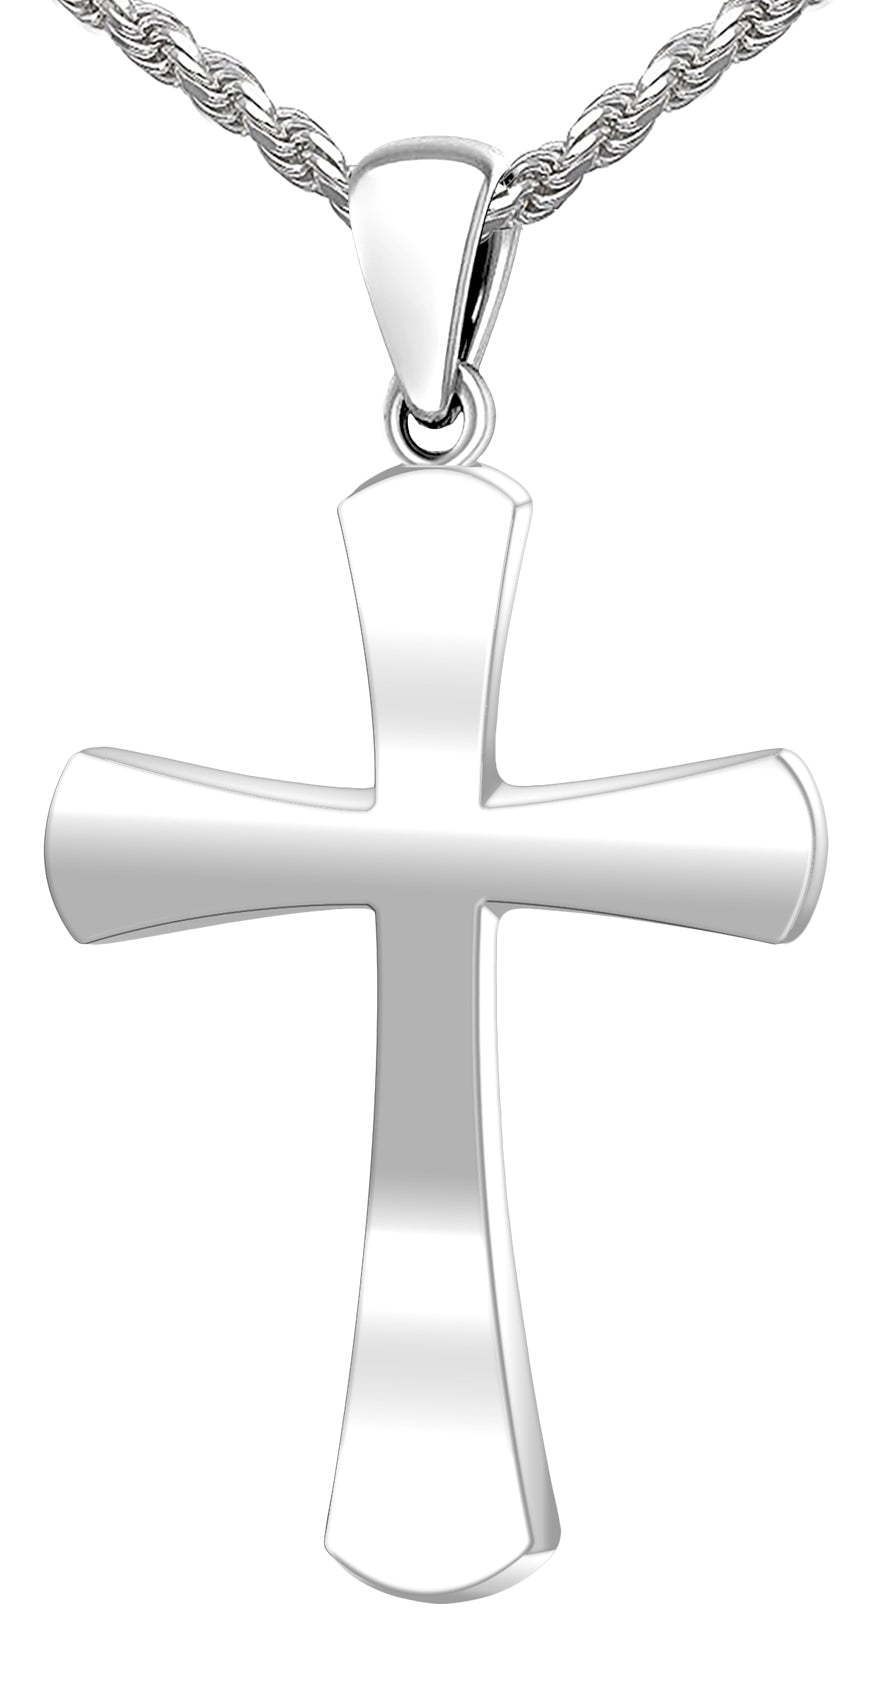 Christian Cross Necklace - Pendant Necklace In 2 Sizes